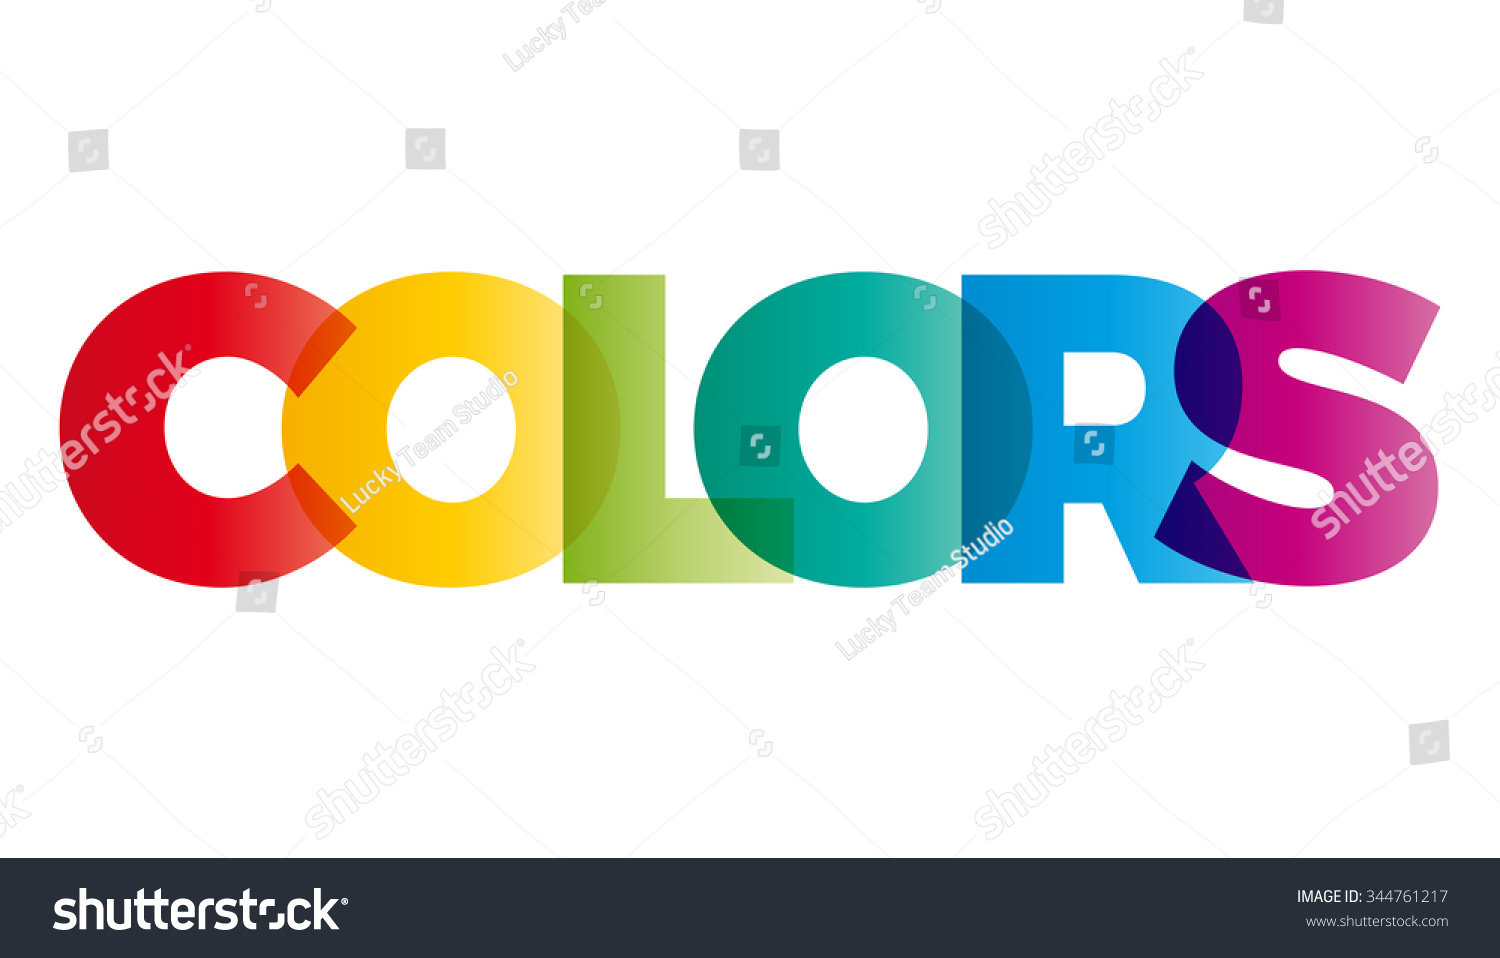 how to detect color in word